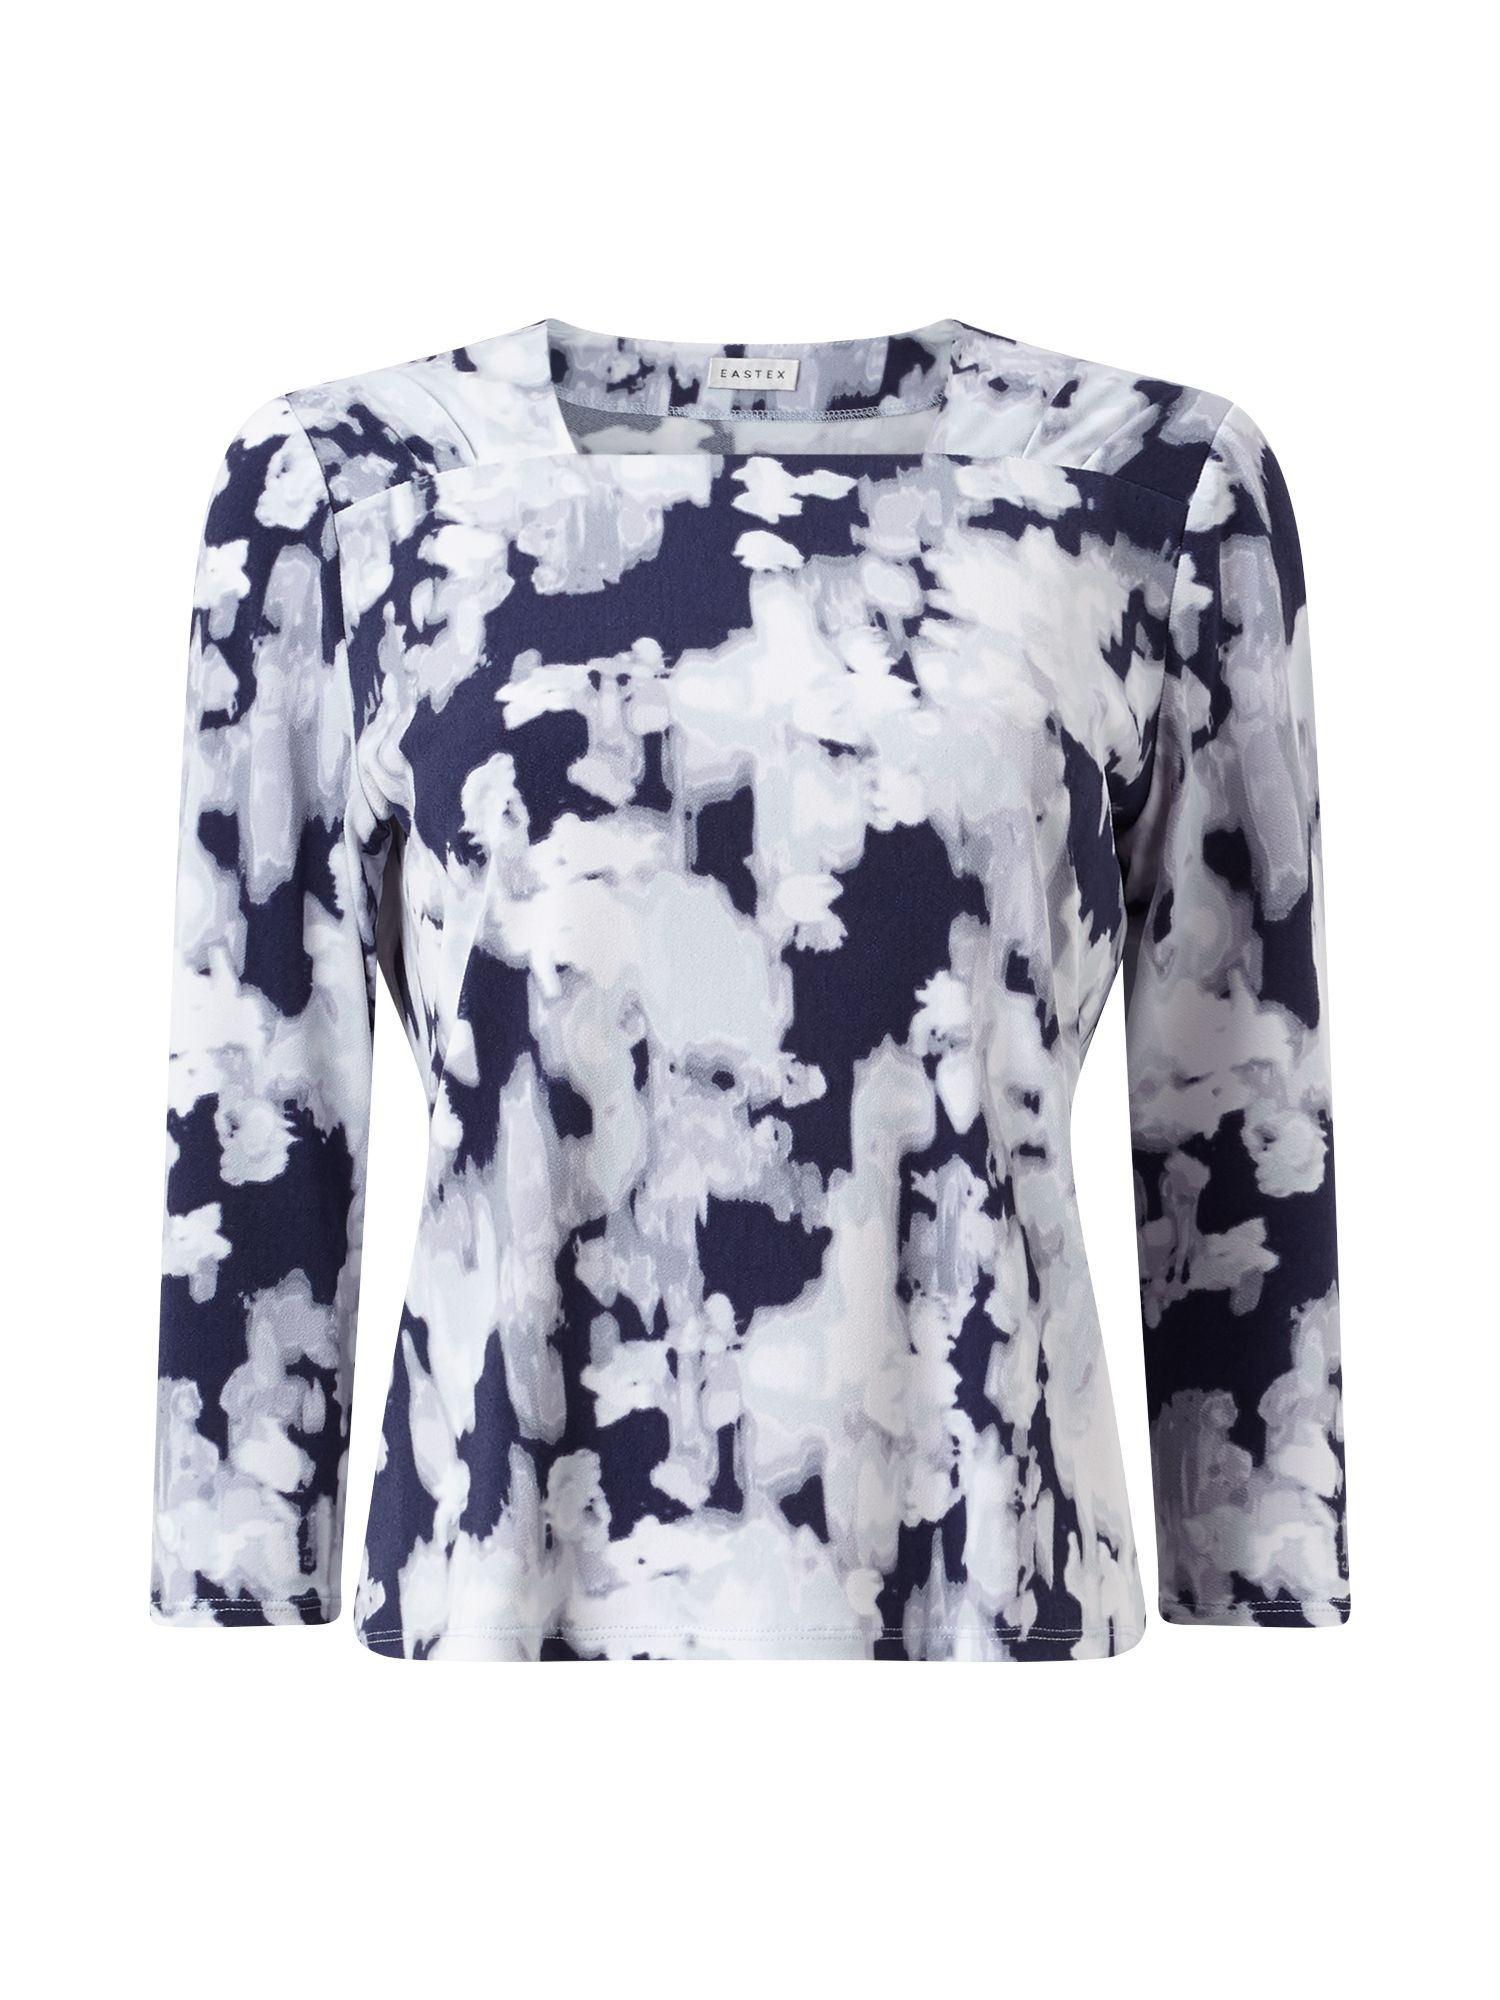 Eastex Reflective Bloom Wrap Top, Multi-Coloured